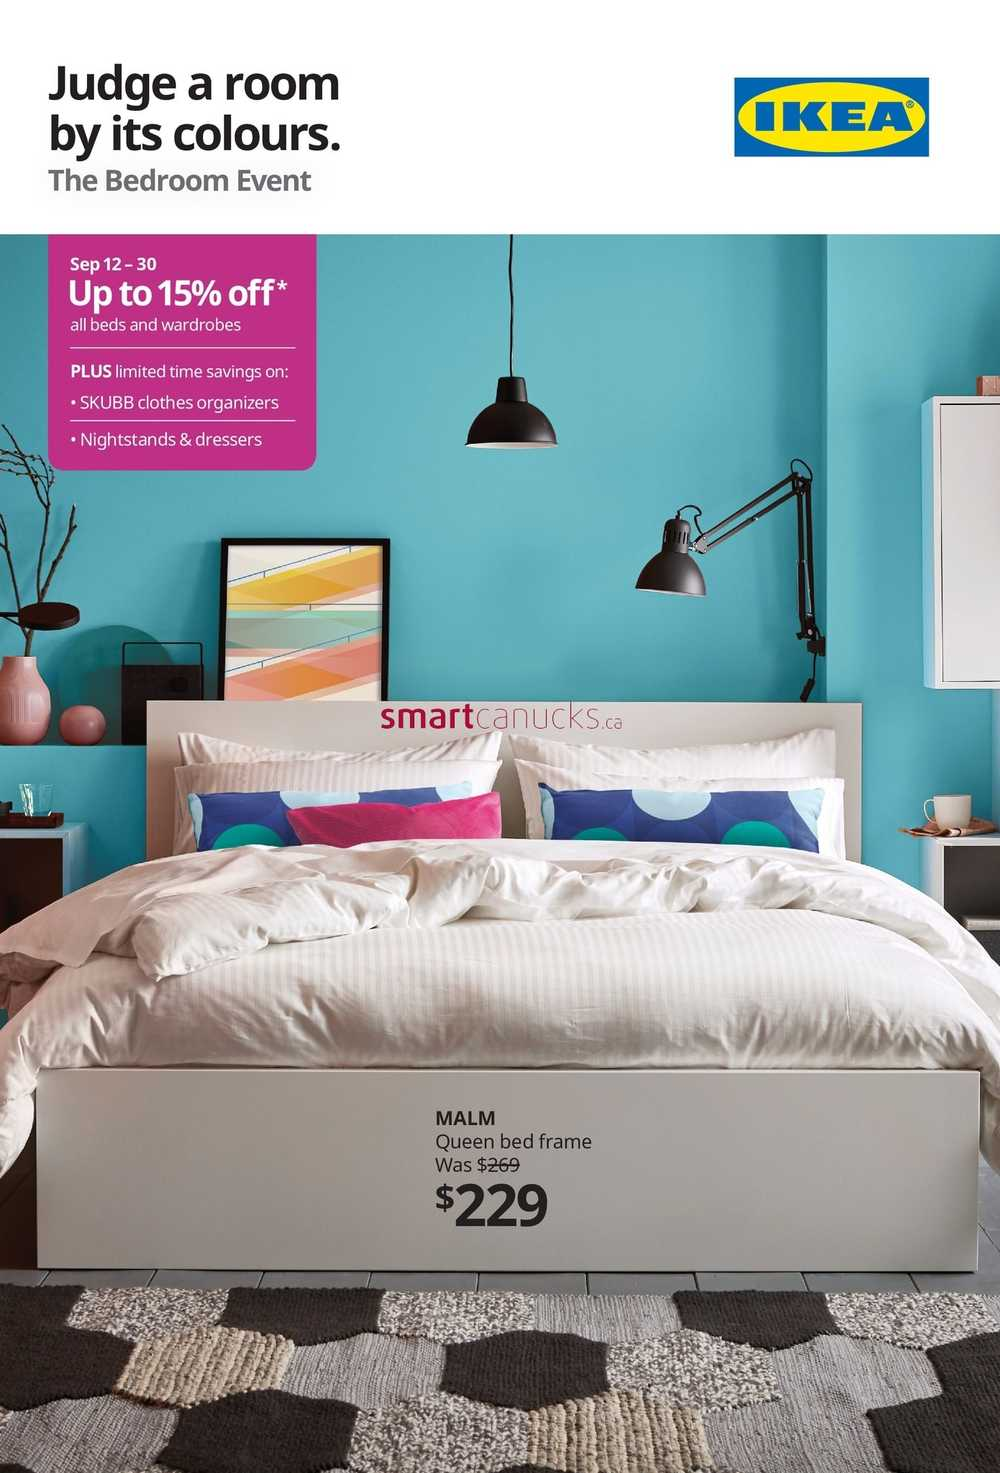 Ikea The Bedroom Event Flyer September 4 to 4